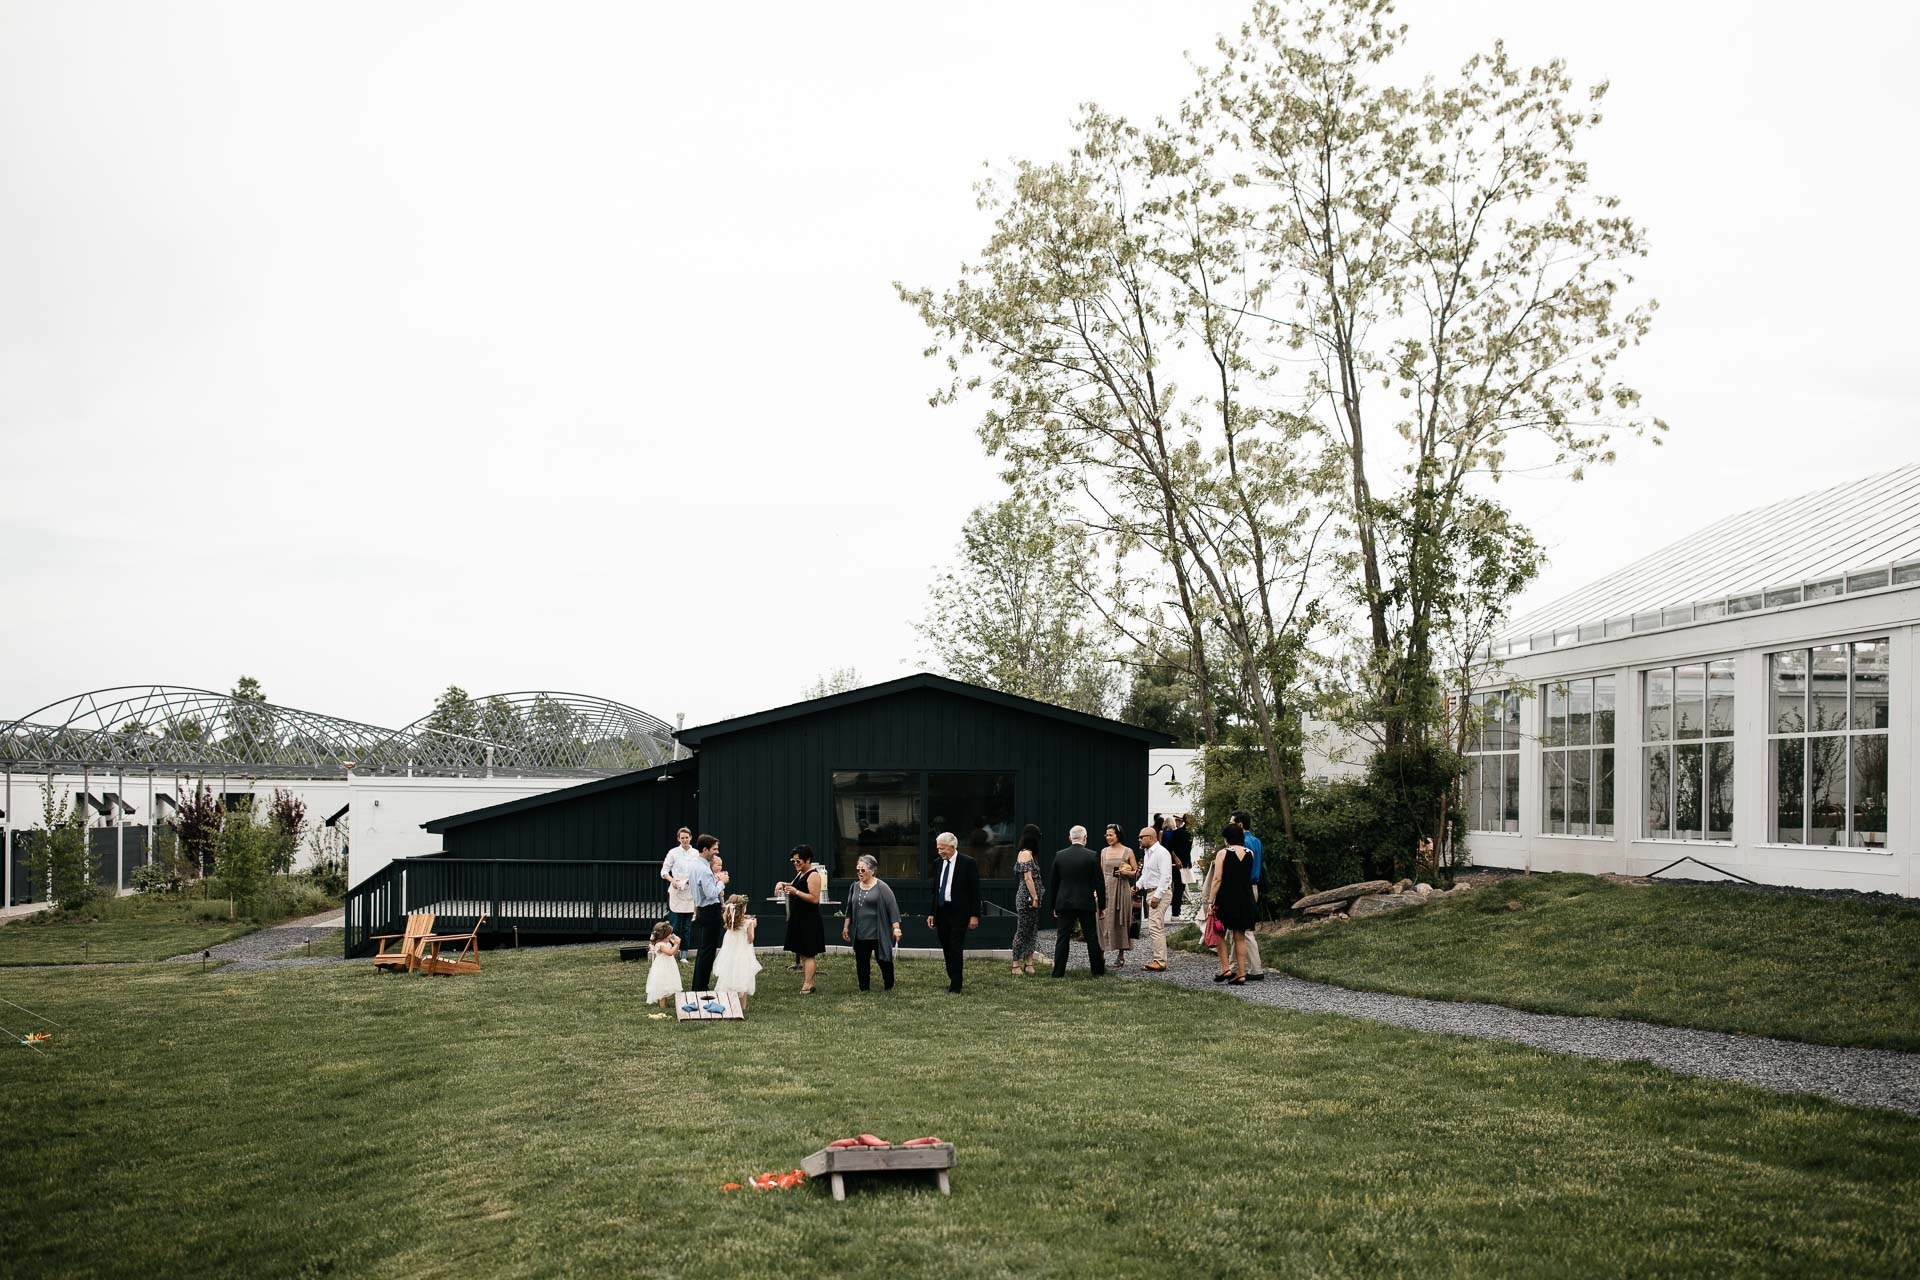 Sarah & Jonathan Wedding Audrey's Farmhouse Greenhouse Catskills, New York, by Jean-Laurent Gaudy